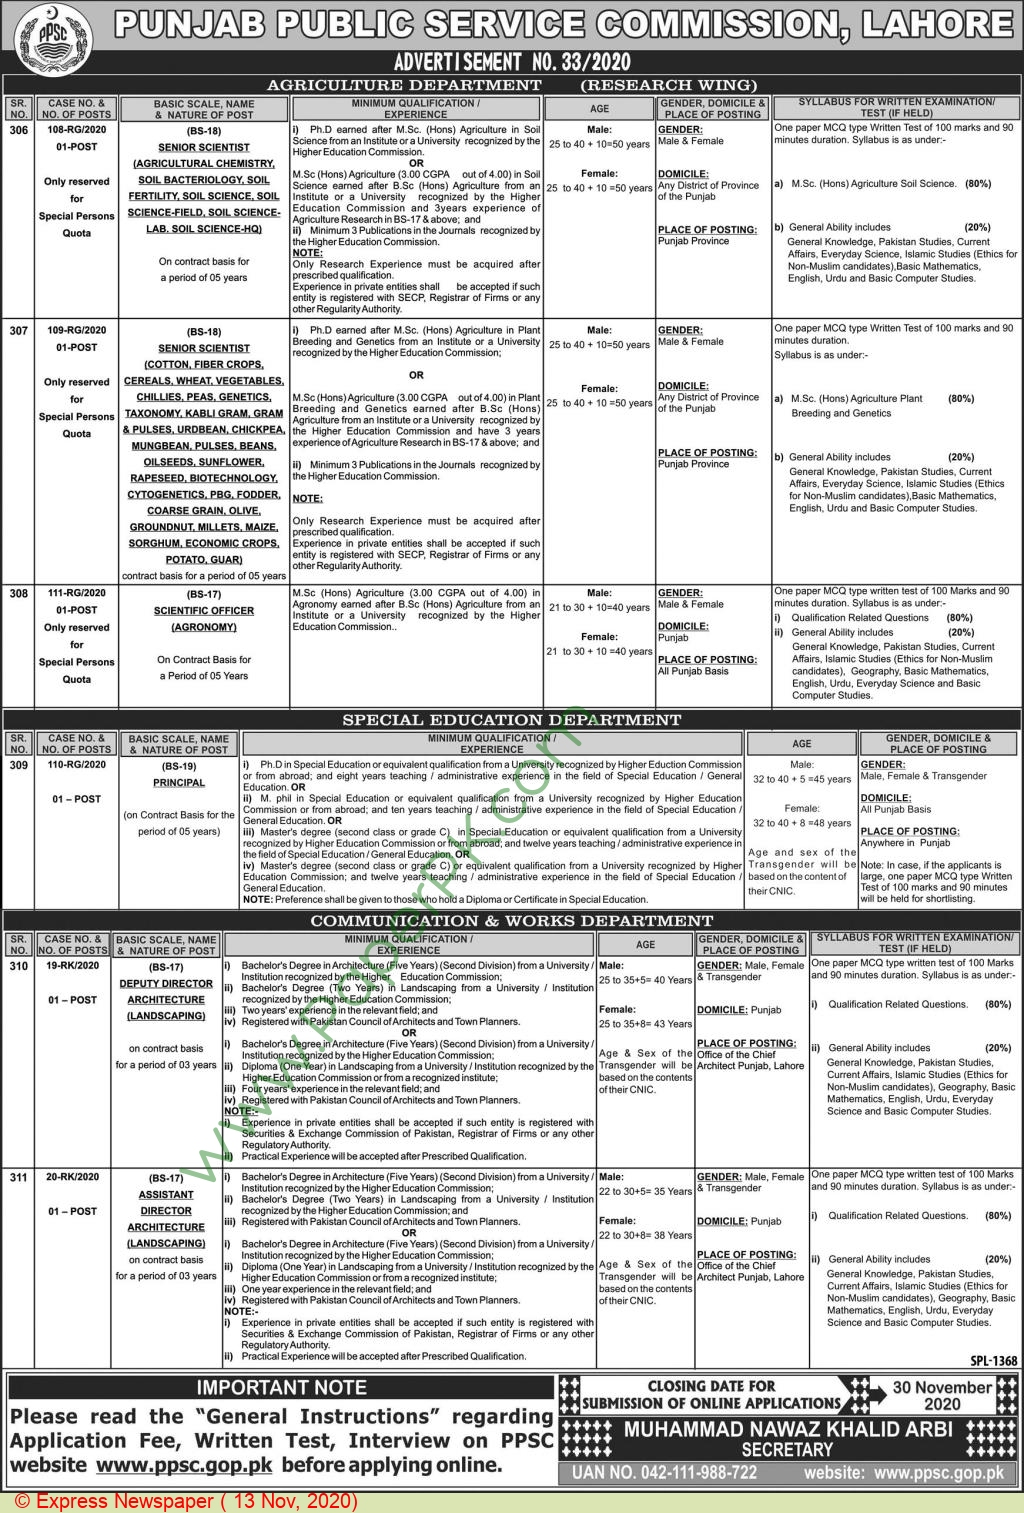 Communication & Works Department jobs newspaper ad for Assistant Director in Lahore on 2020-11-13